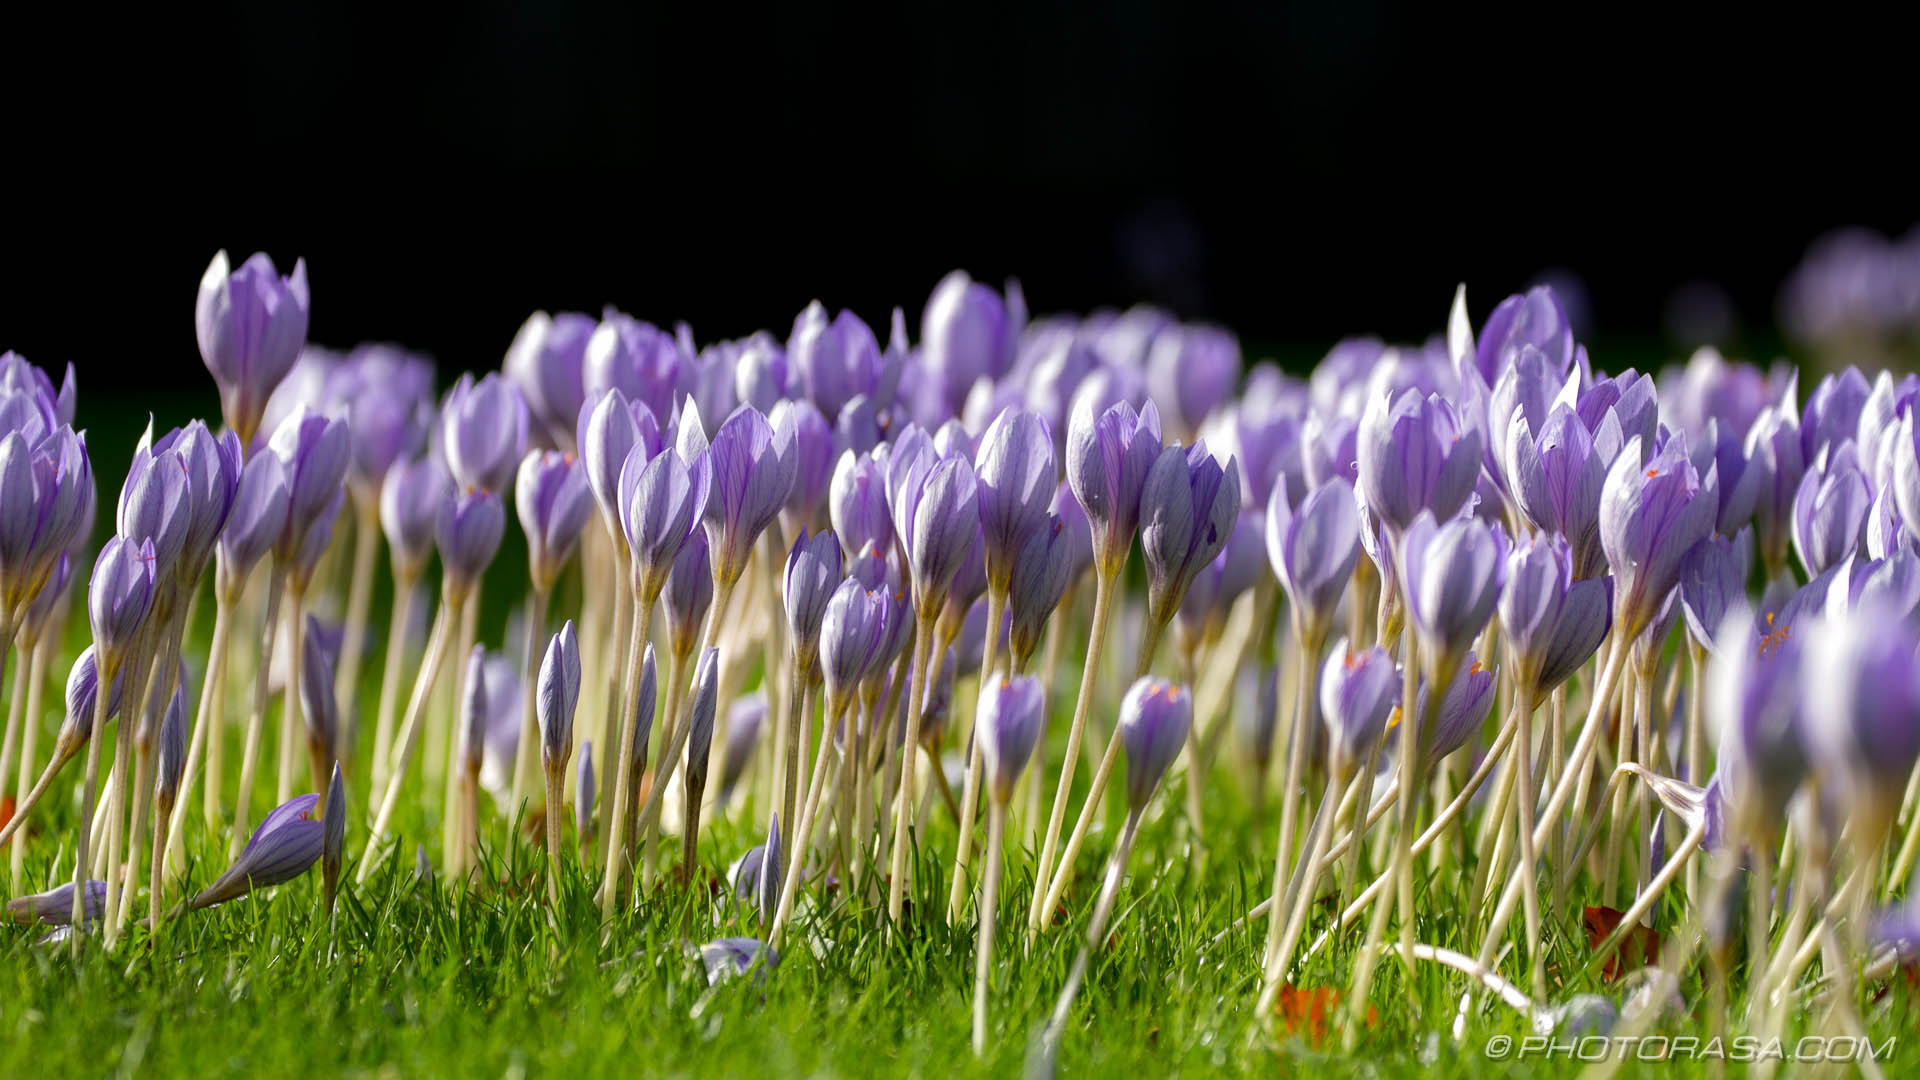 http://photorasa.com/purple-autumn-crocuses/many-from-the-side/